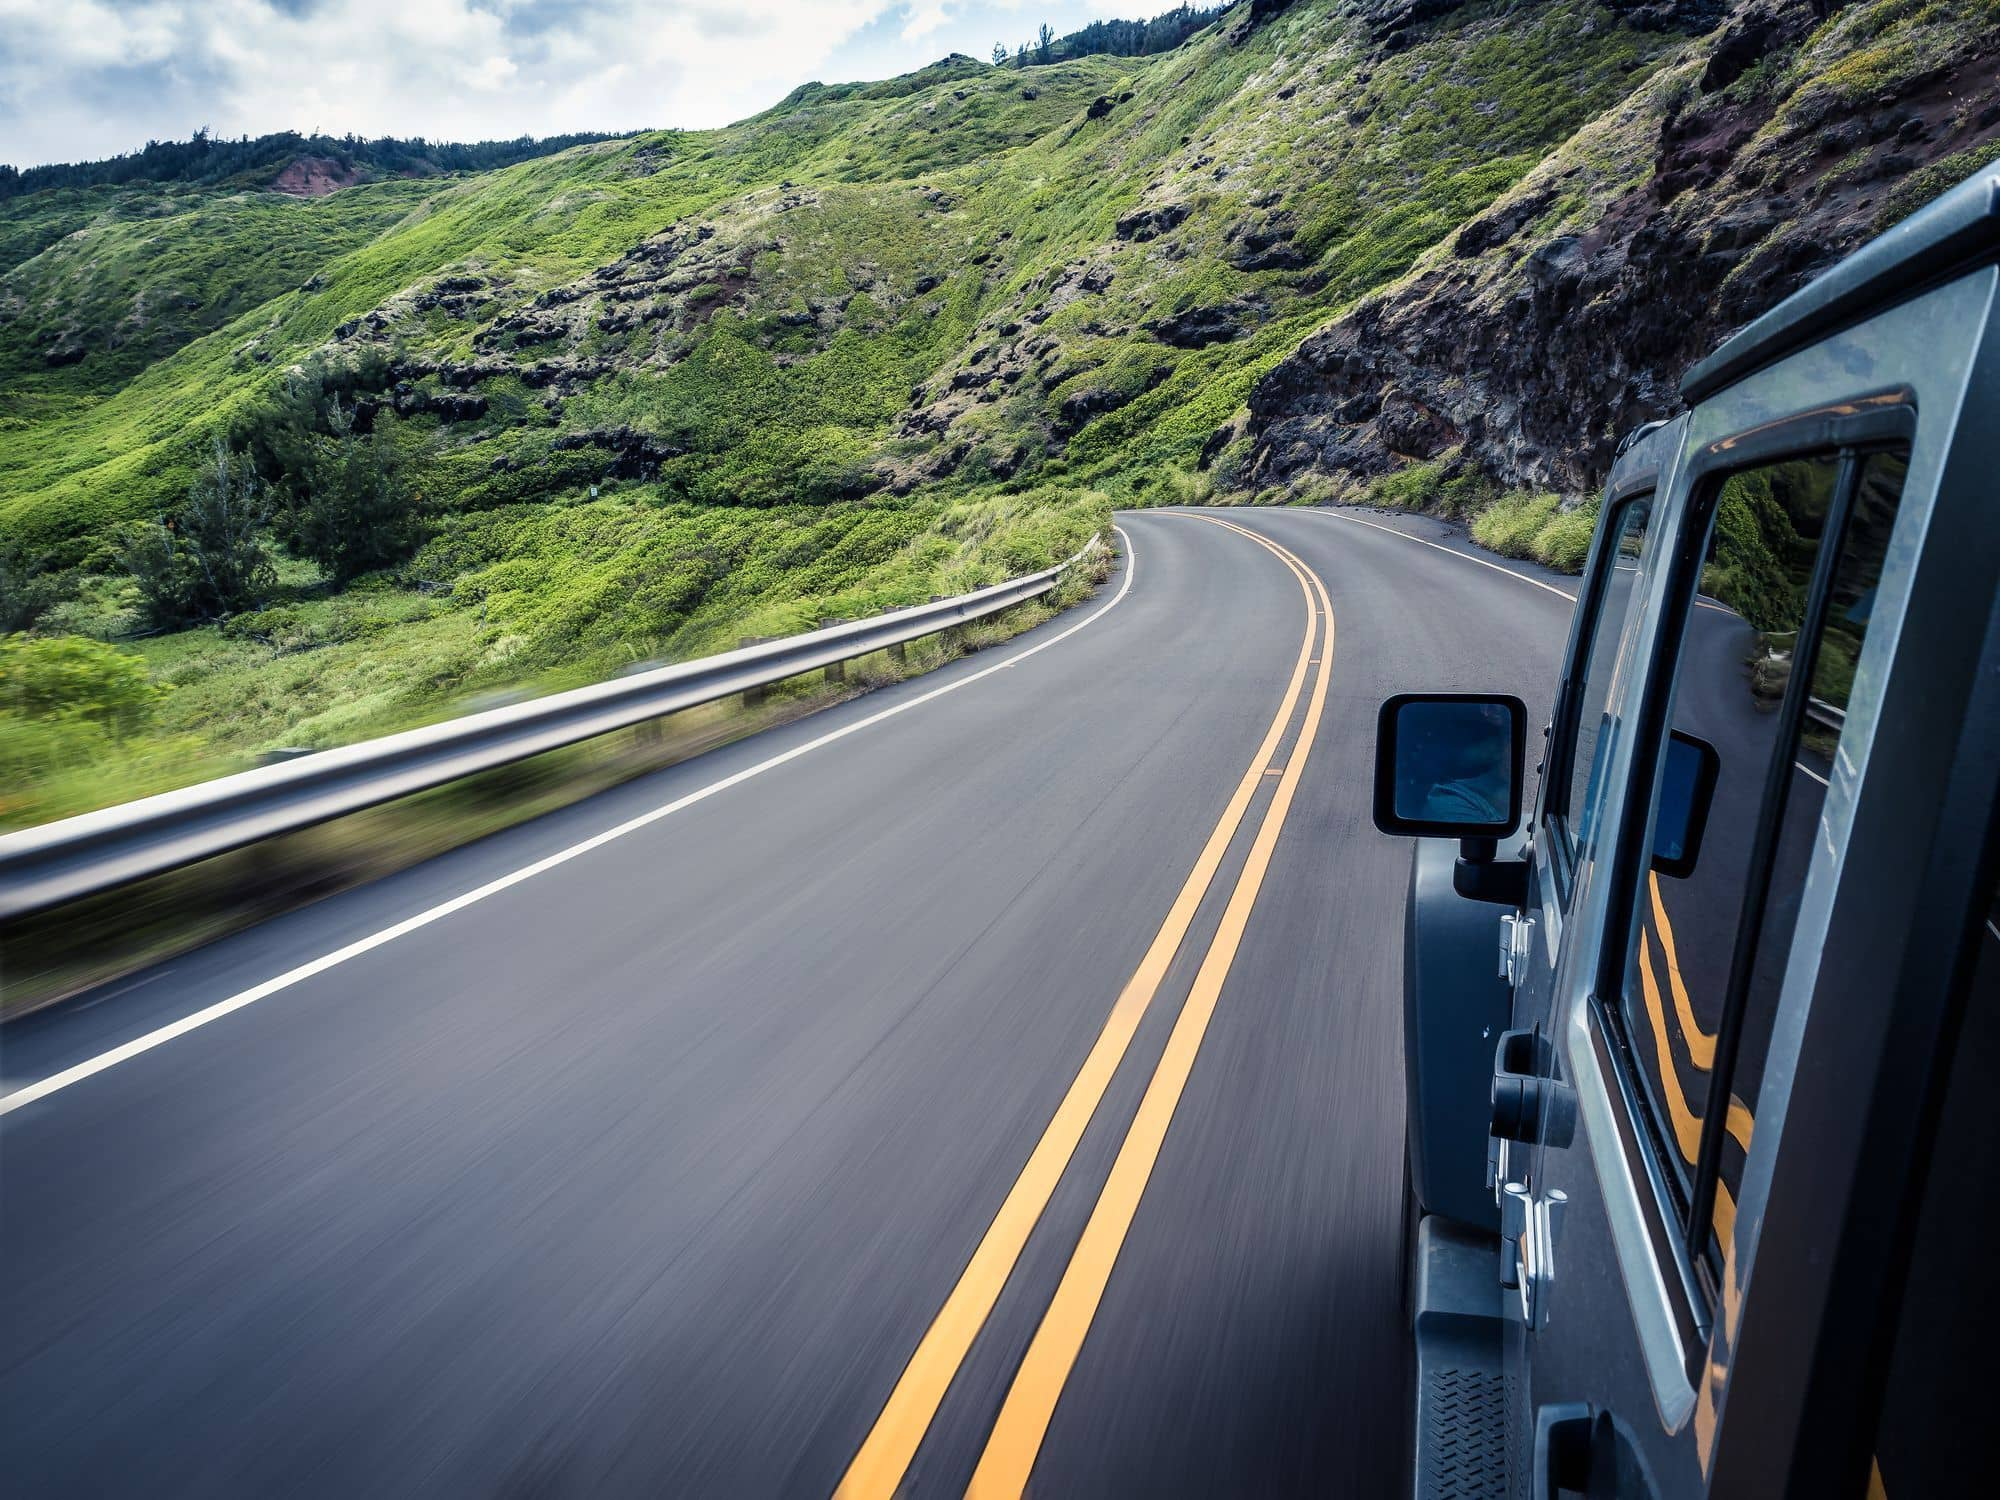 How to Plan a Cross Country Road Trip - How to Plan a Road Trip - Long Road Trip Planning